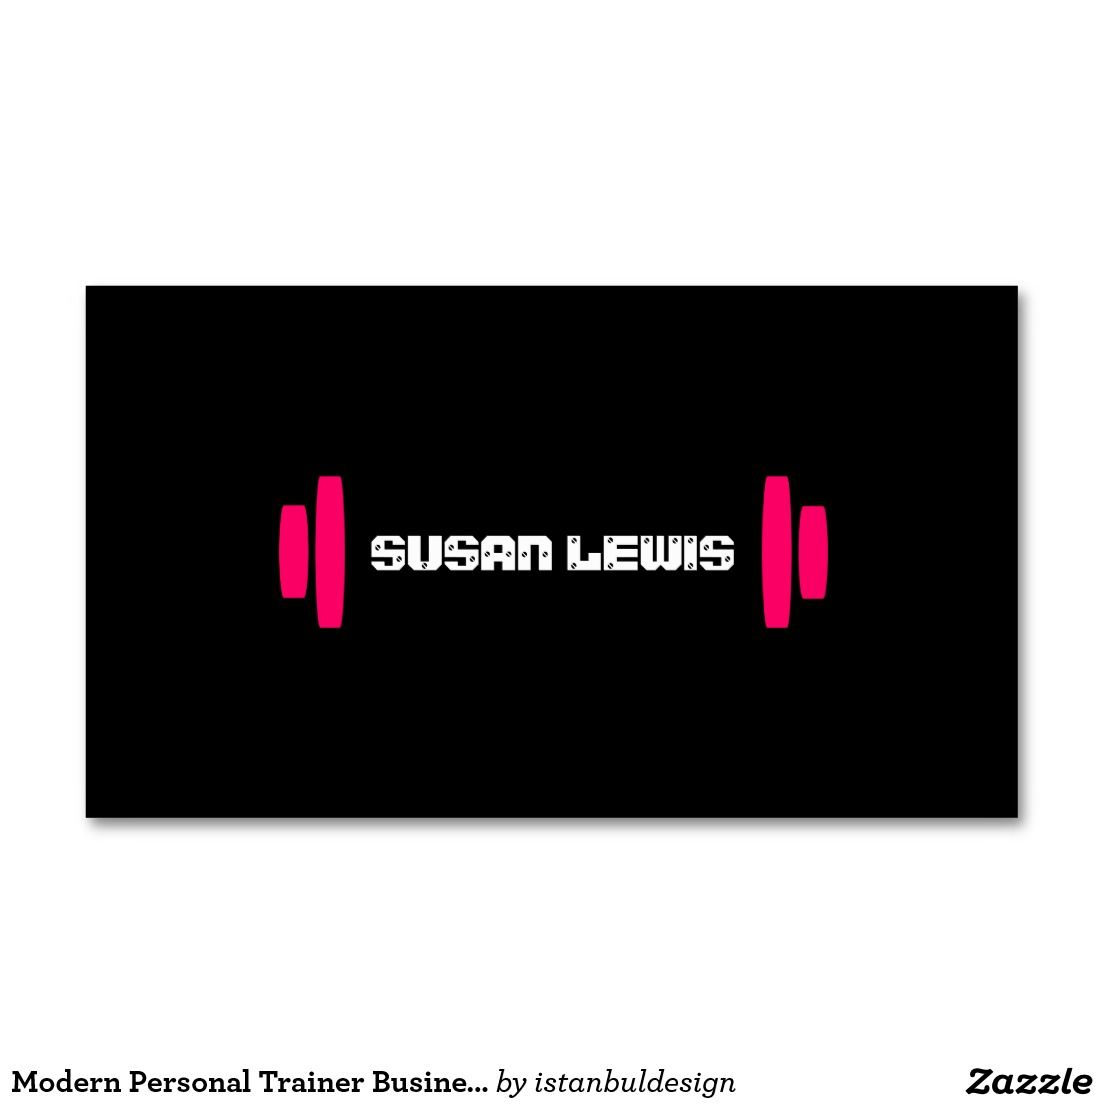 Personal trainers business cards boatremyeaton personal trainers business cards colourmoves